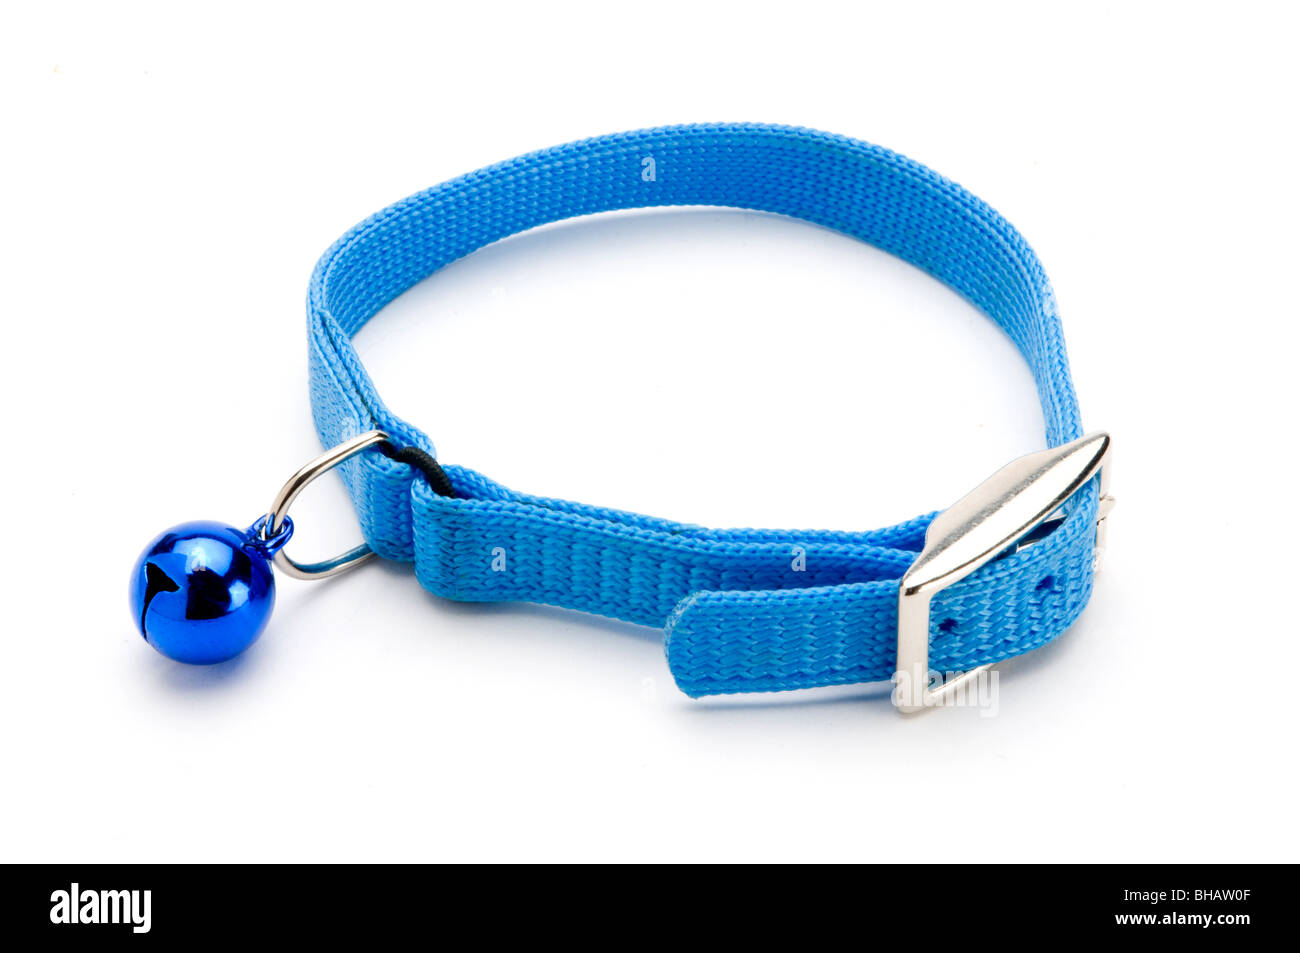 PET COLLAR ON WHITE - Stock Image